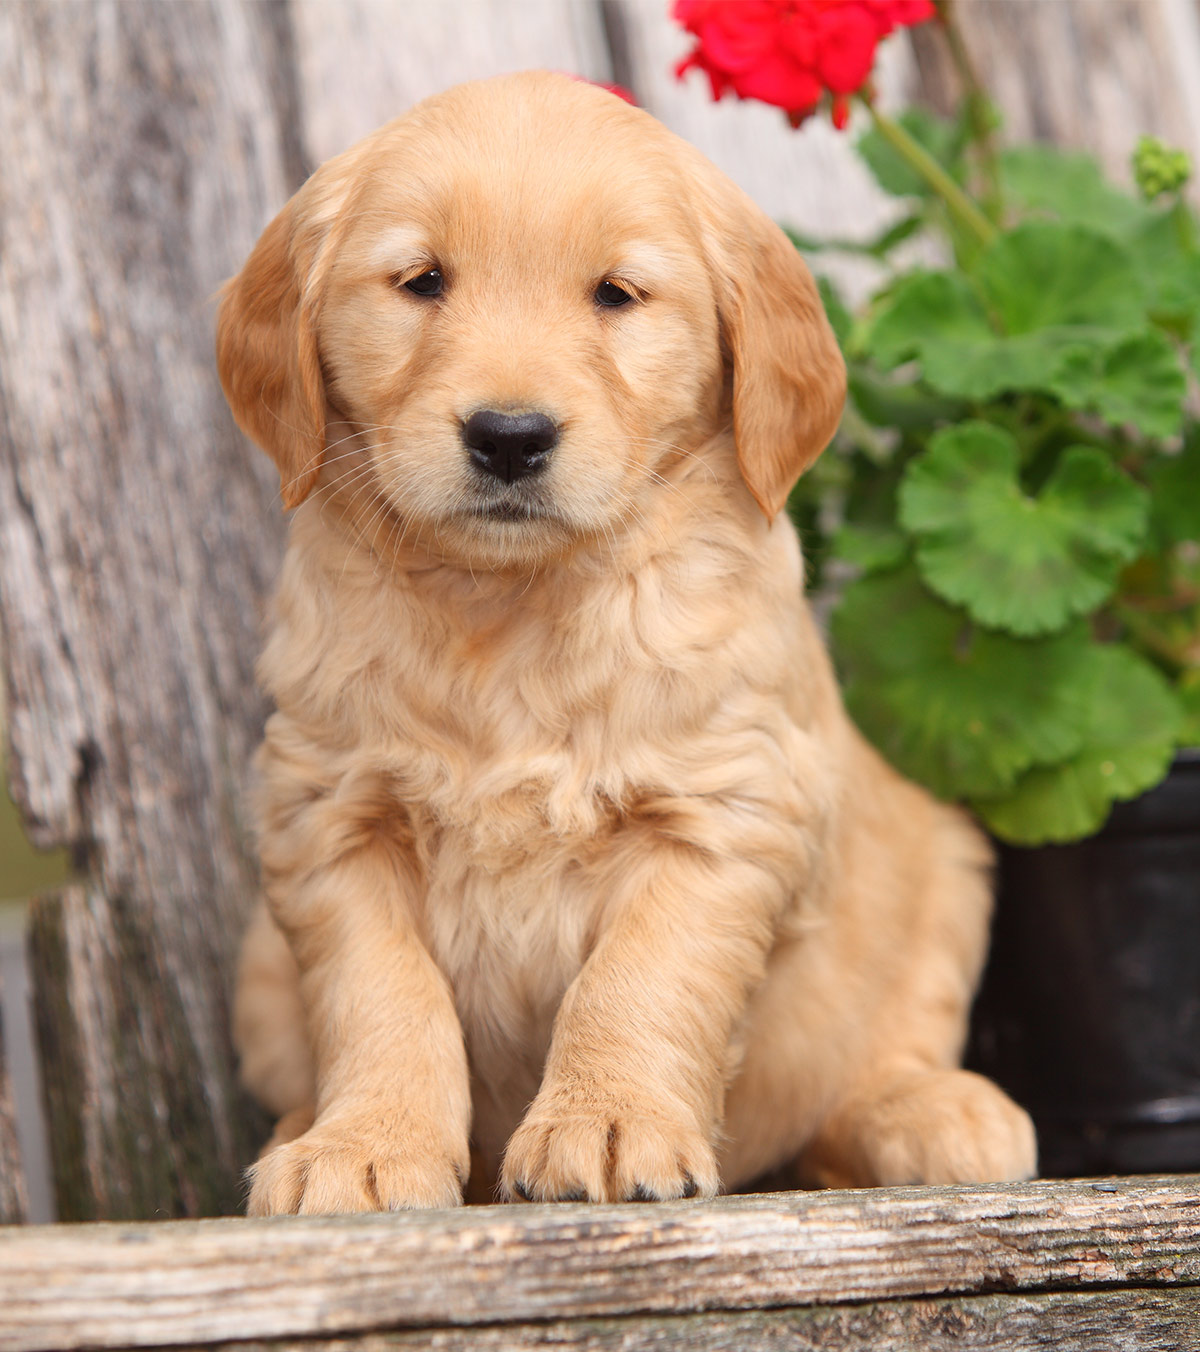 Pictures of Golden Retrievers puppy